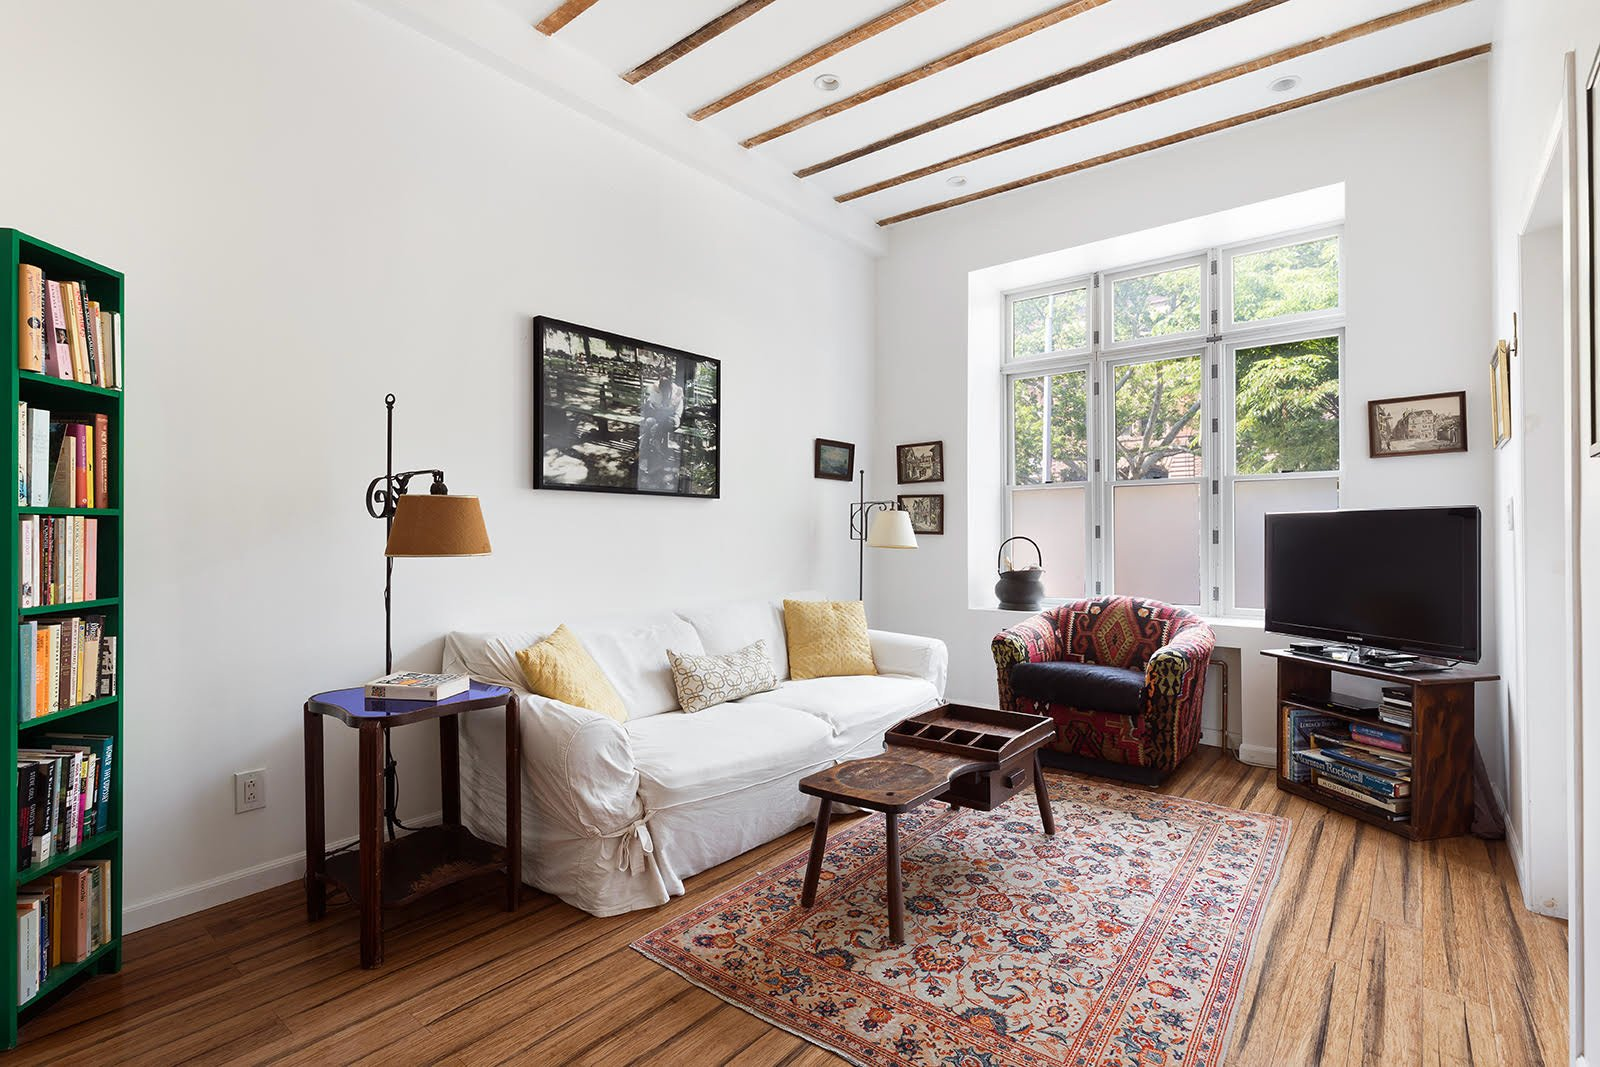 The airy aesthetic continues downstairs to the lower-level unit. Here, a large living area features more wood details contrasted by crisp, white walls.  Photo 6 of 8 in A Brooklyn Townhouse Reimagined as a Crisp, Loft-Like Duplex Asks $2.75M